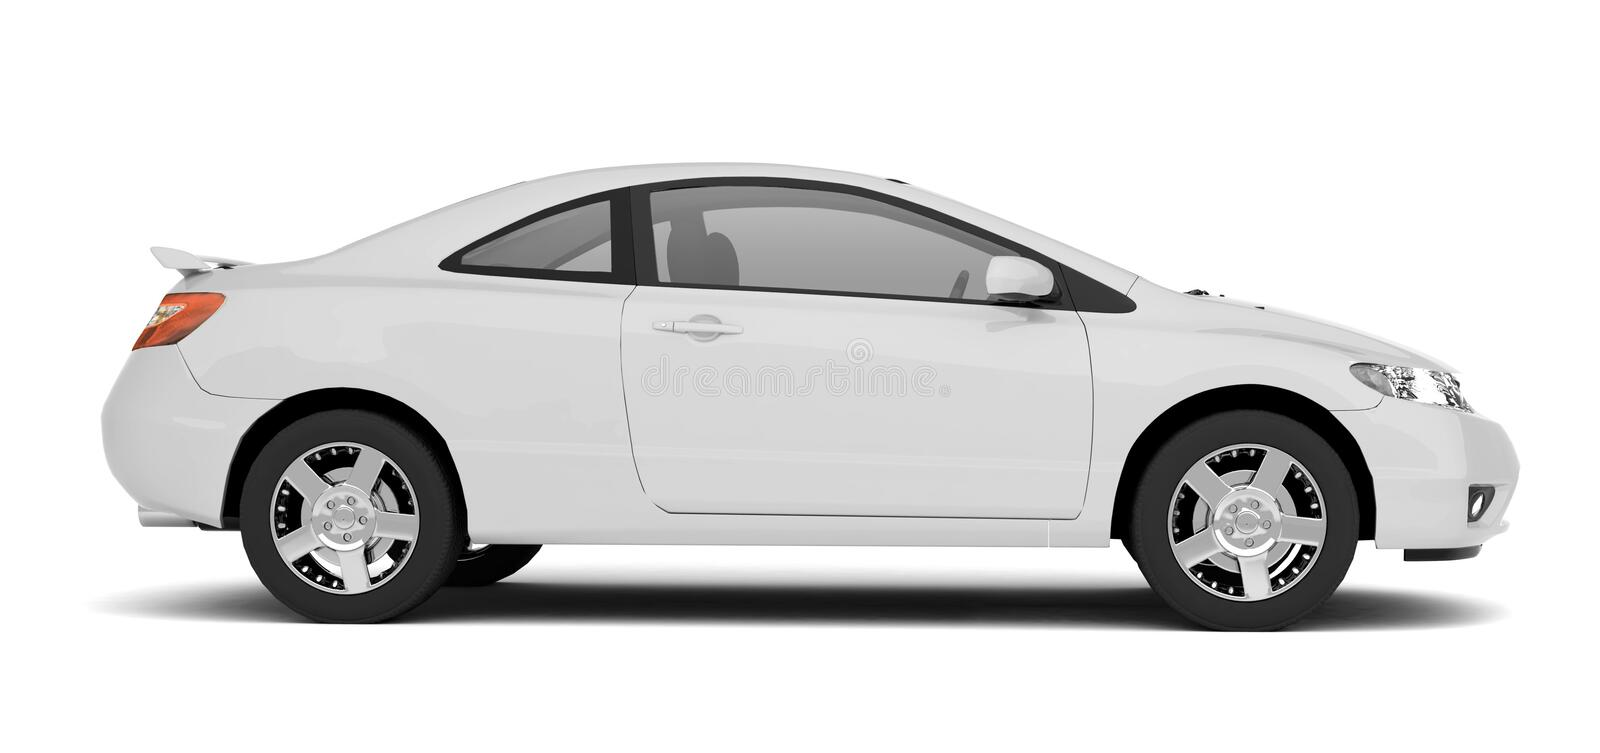 Download Compact White Car Side View Royalty Free Stock Image - Image: 11205616